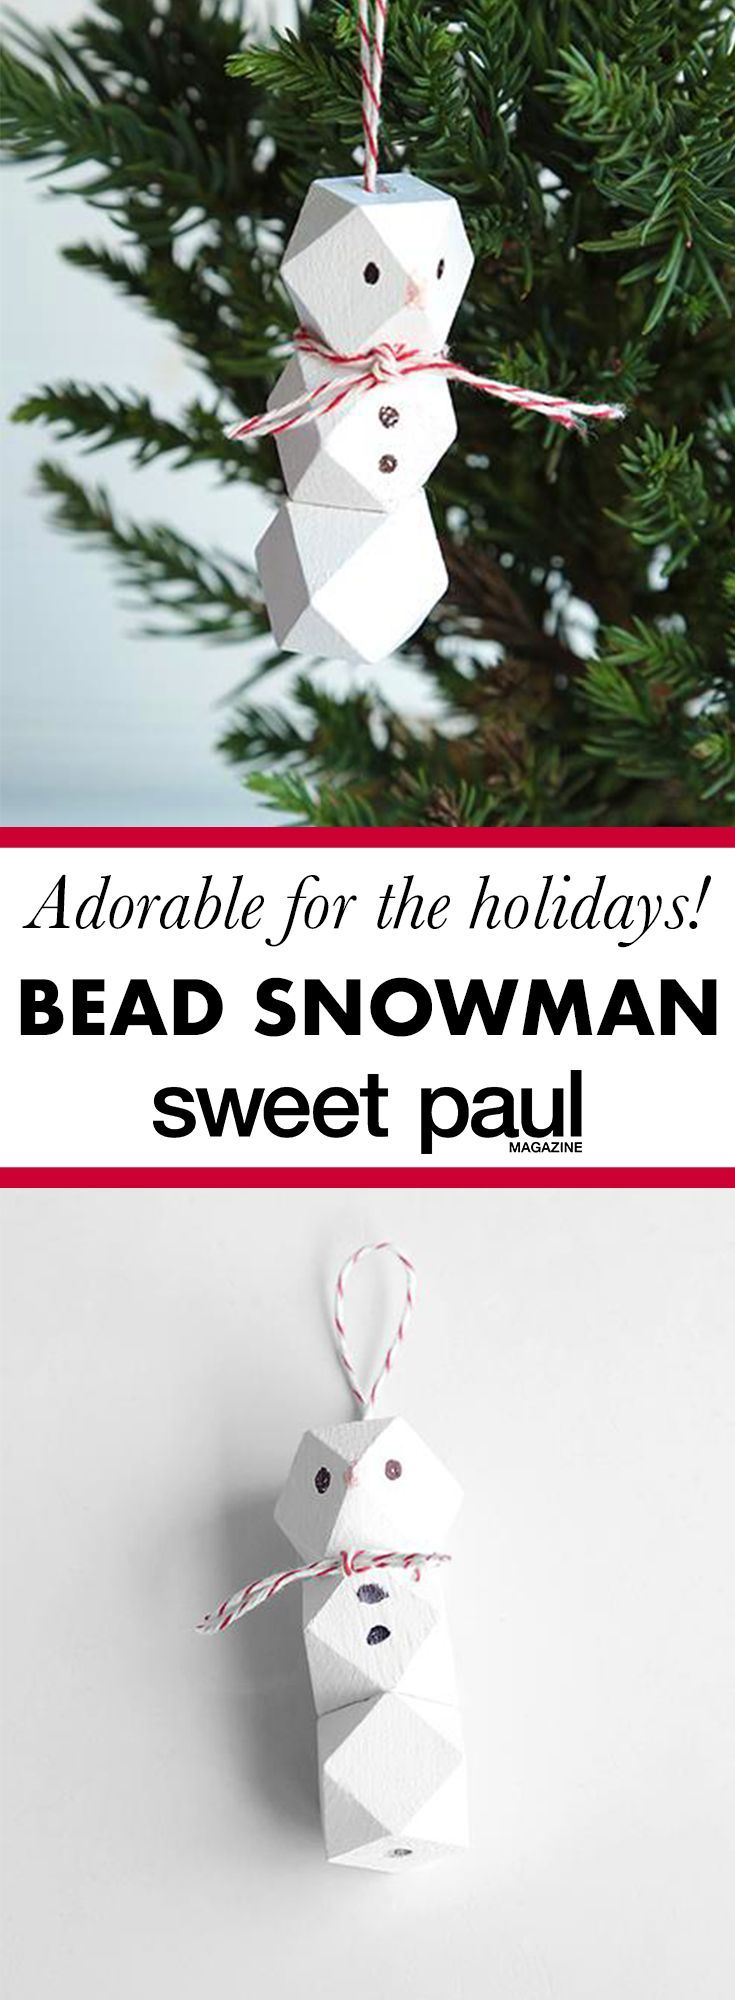 Wooden Bead Snowman Ornament Sweet Paul Magazine Crafts With Pictures Diy Christmas Tree Creative Christmas